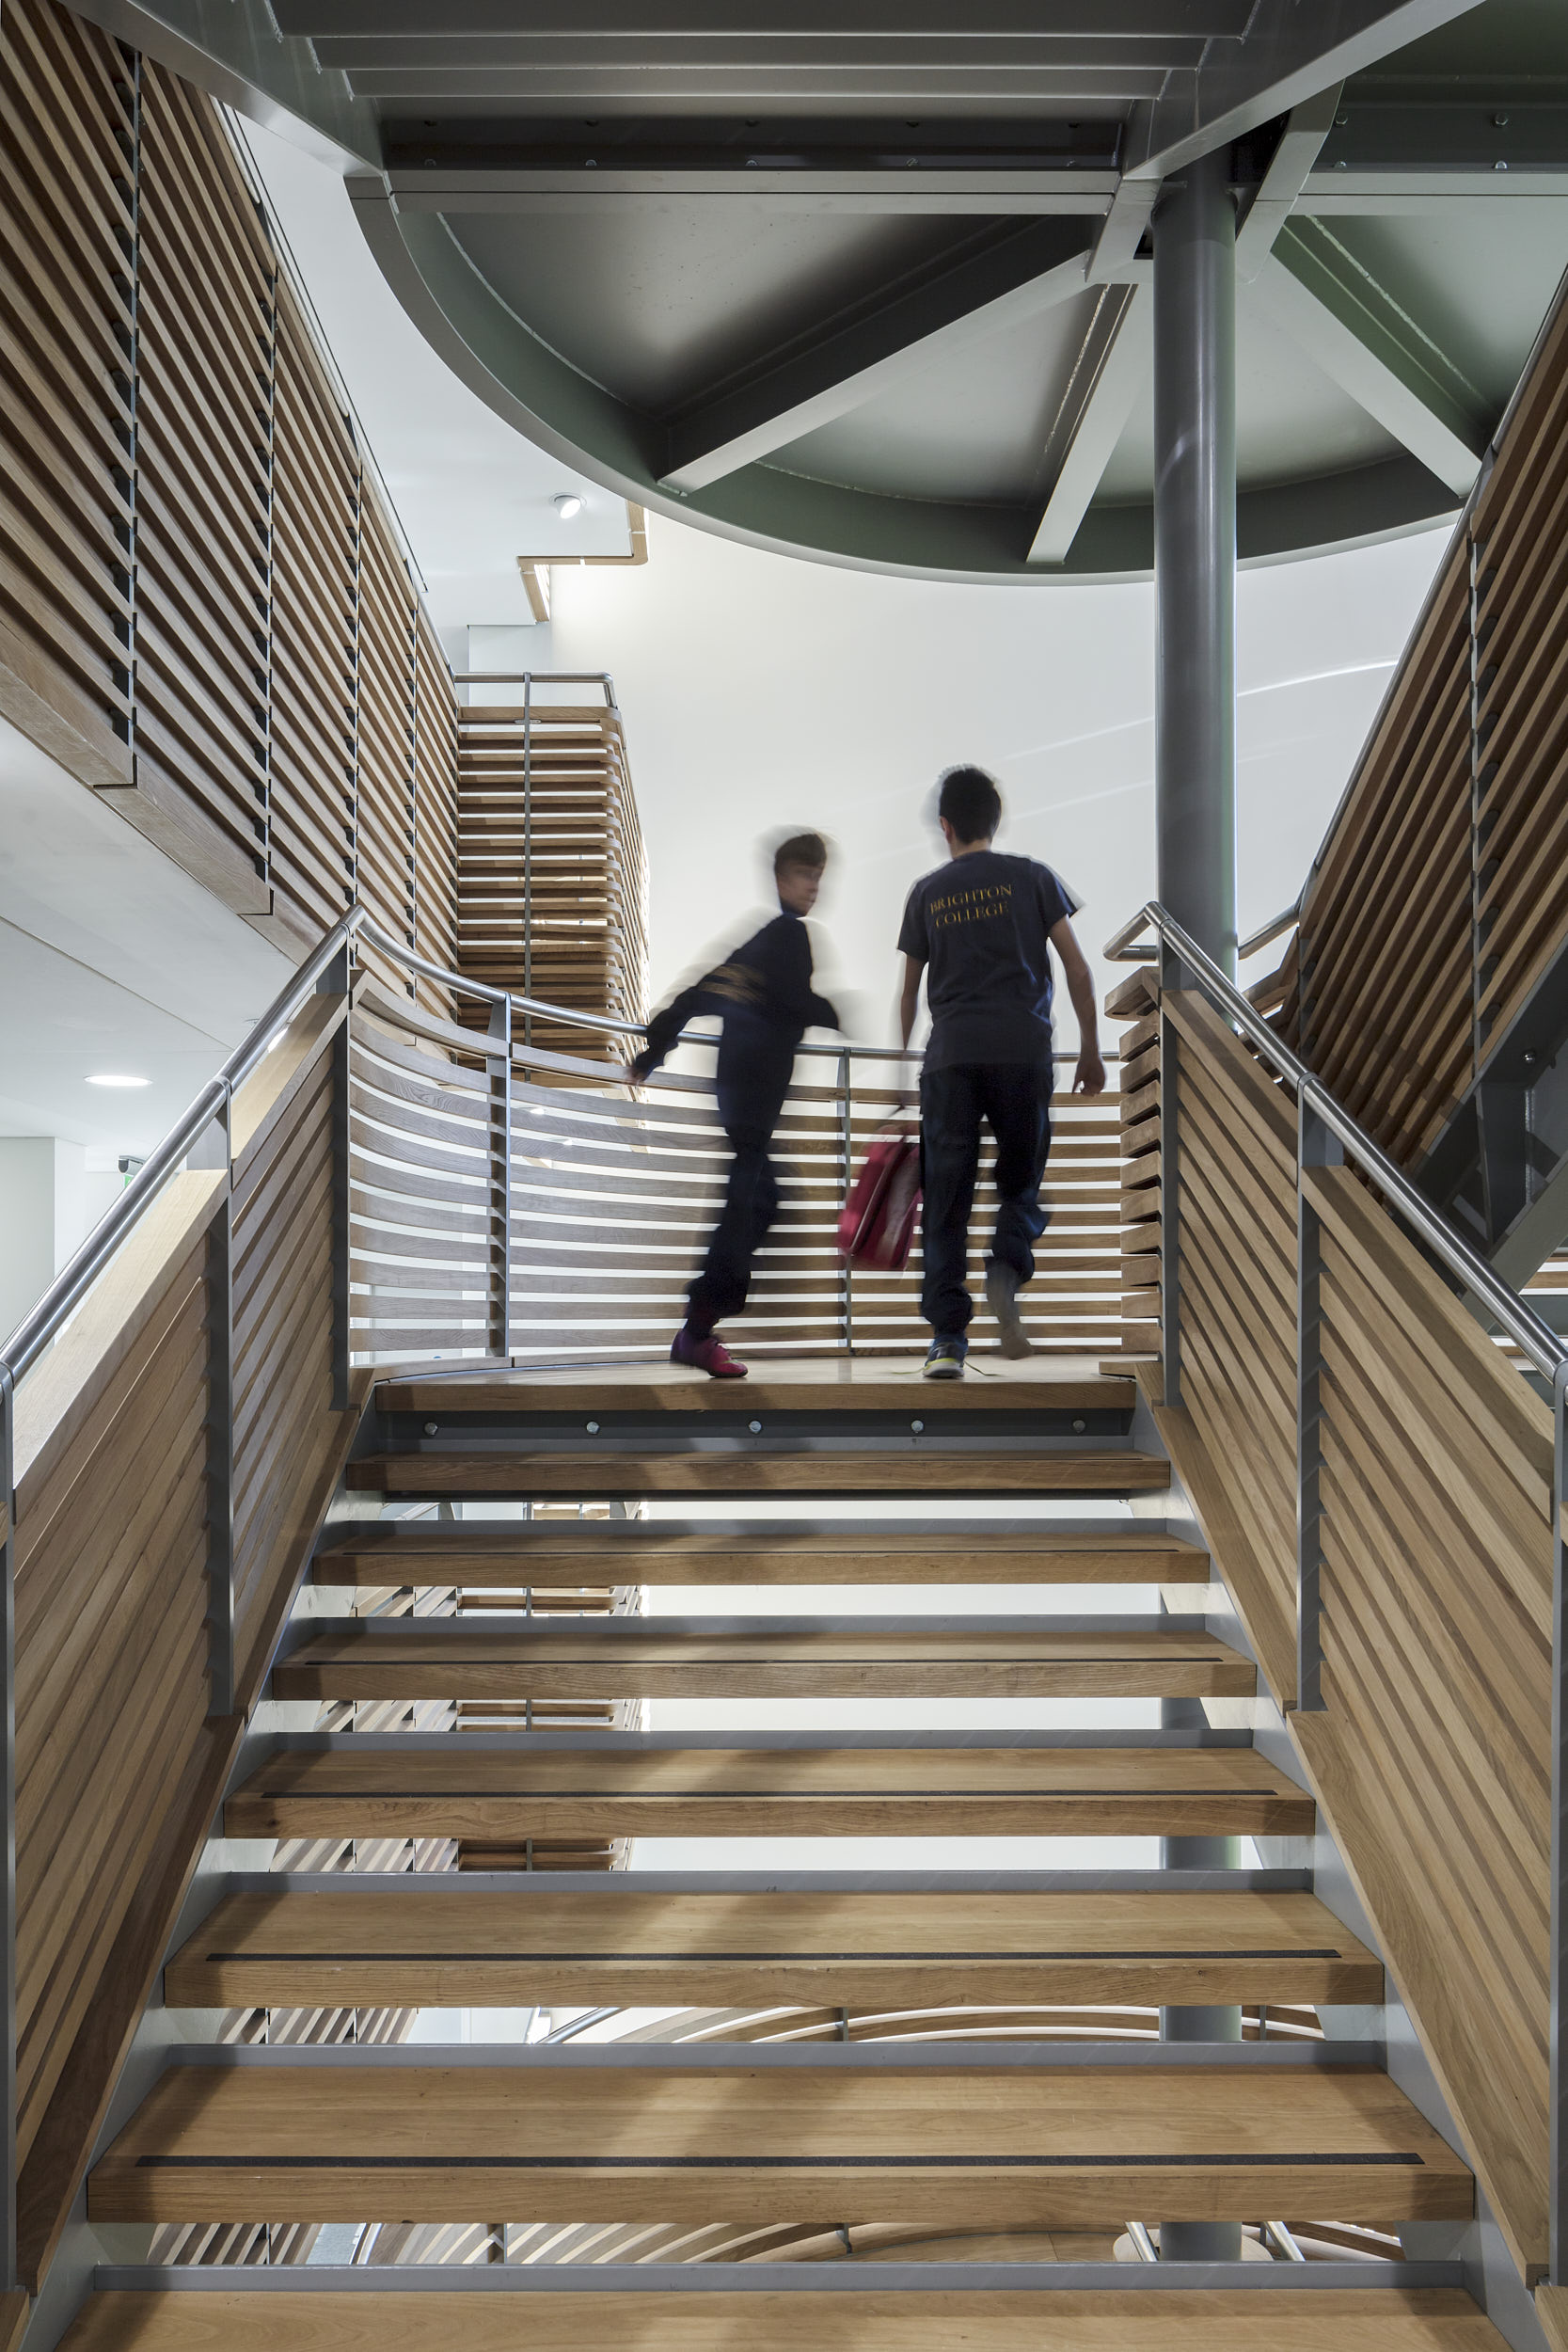 The interior staircase is a strong feature of the design.